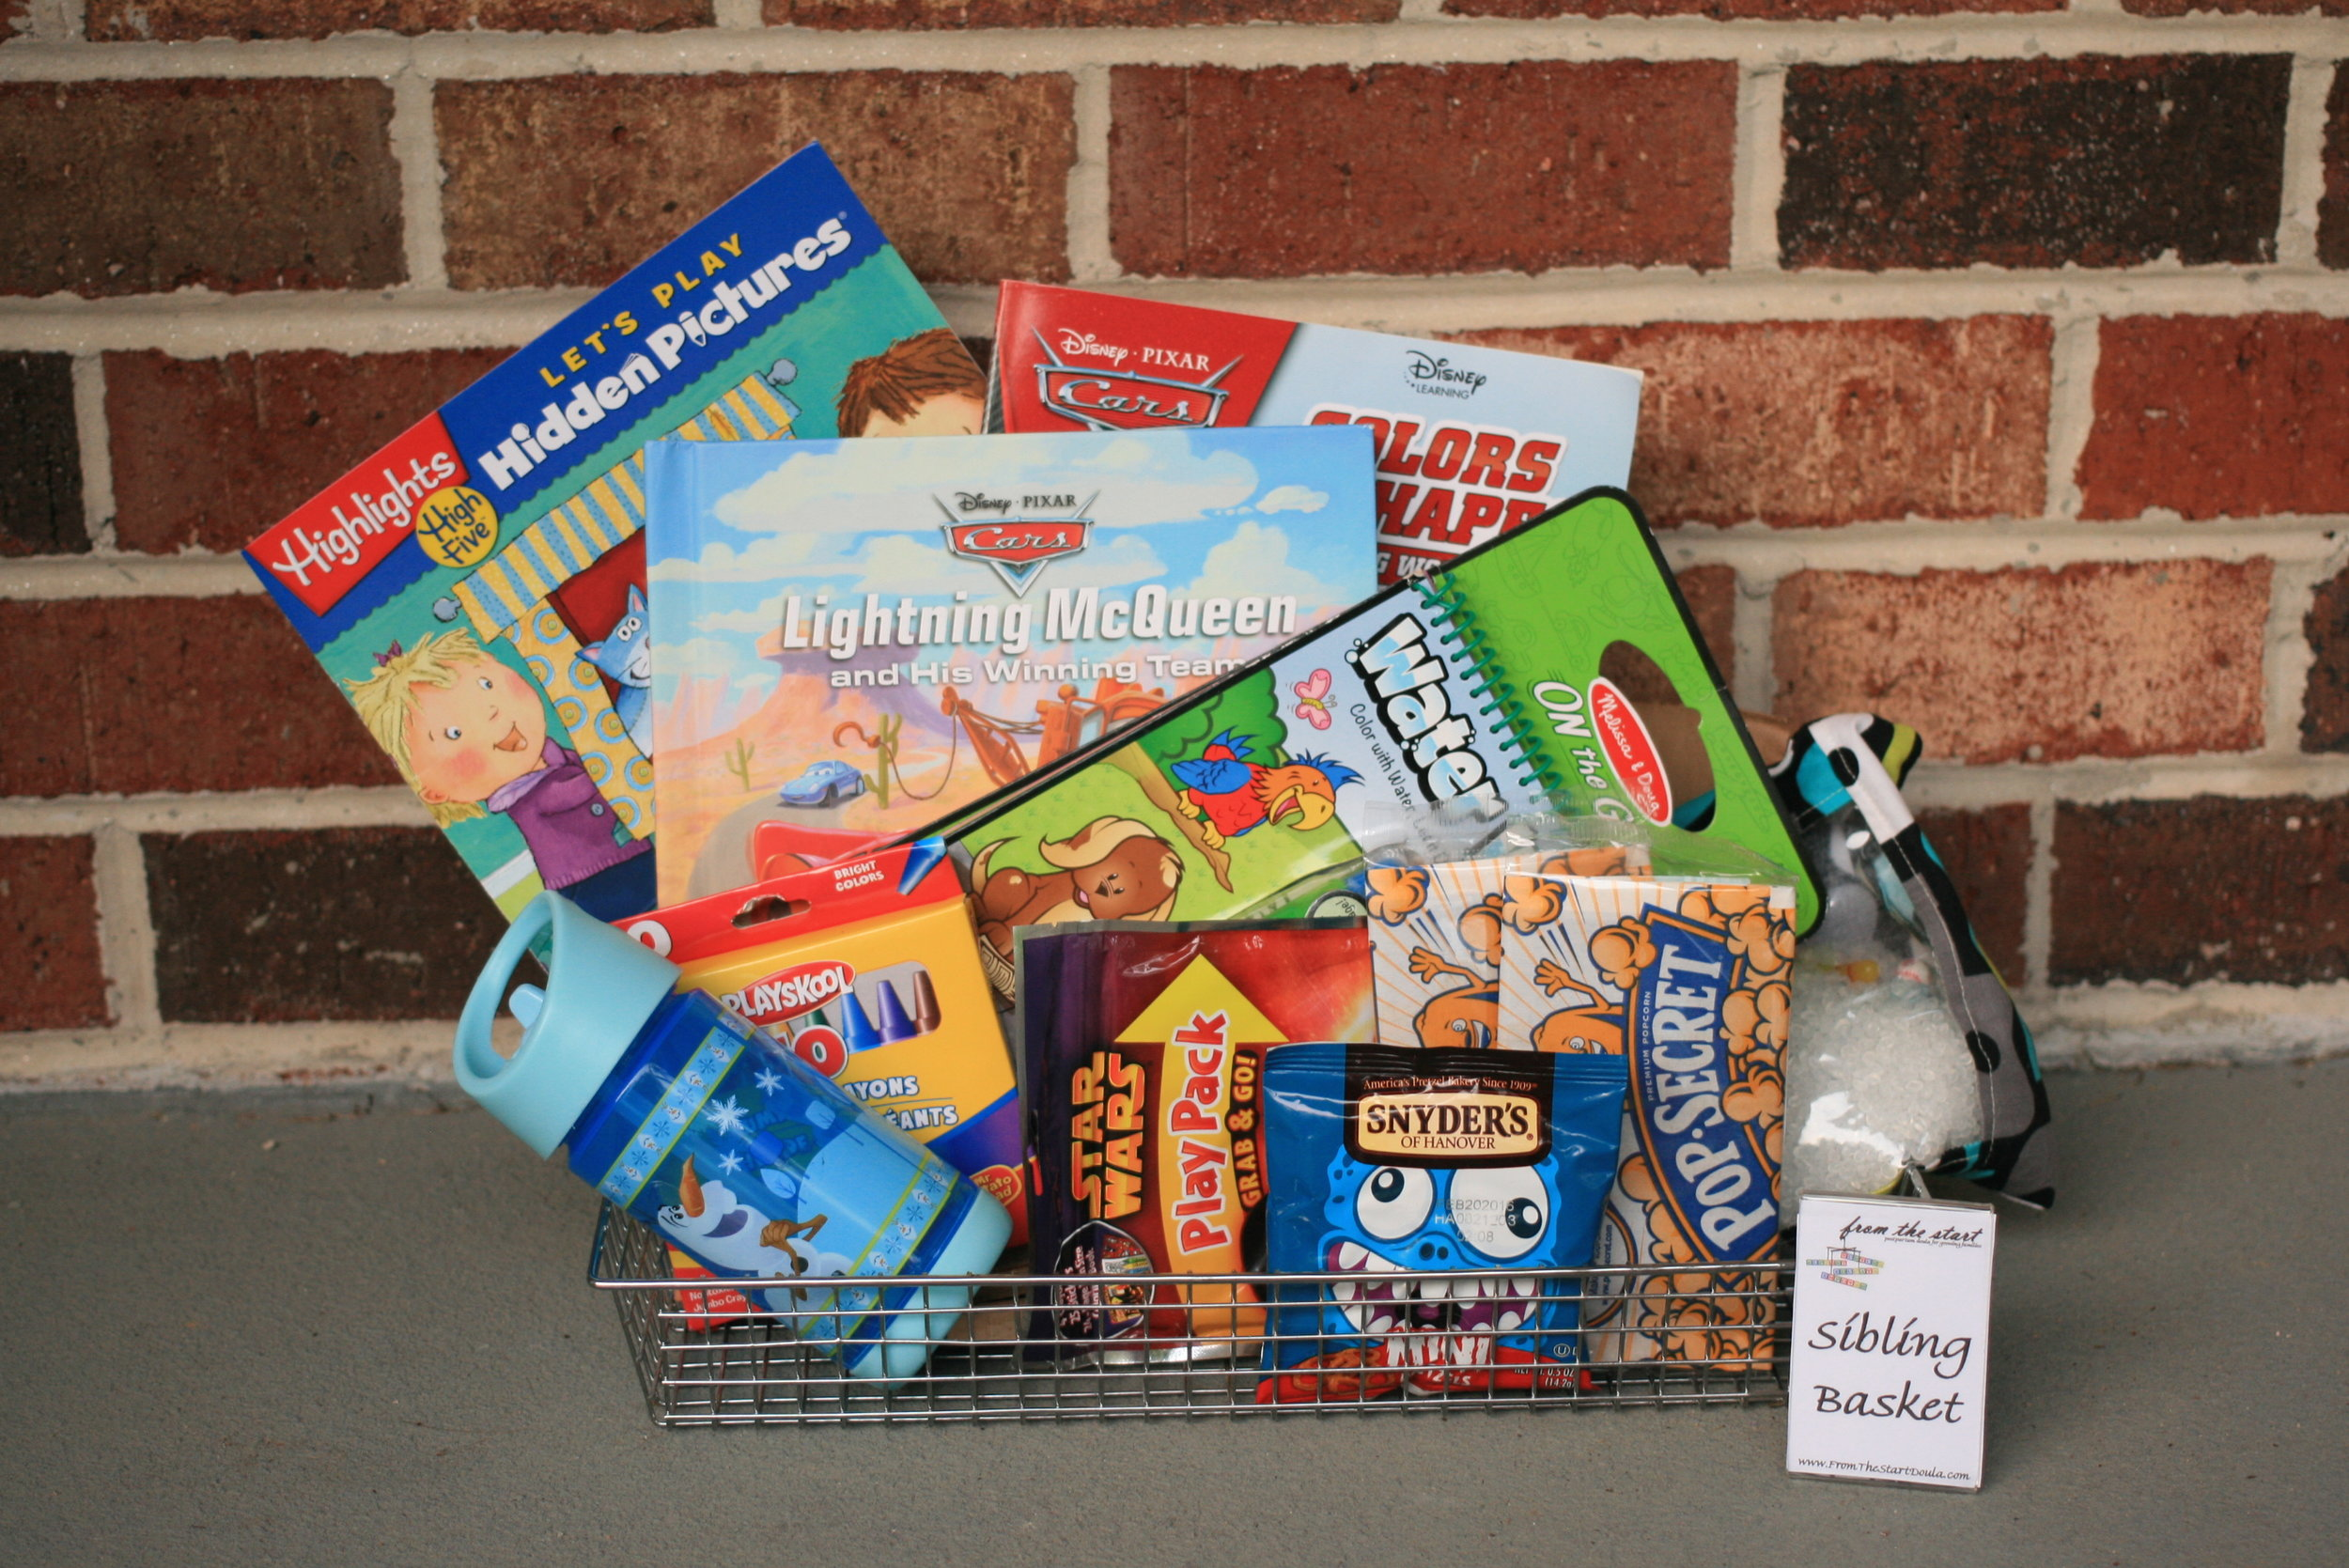 One example of a sibling basket - single serve snacks, recordable book, water bottle, I Spy bag, hidden pictures magazines and a paint-with-water book.